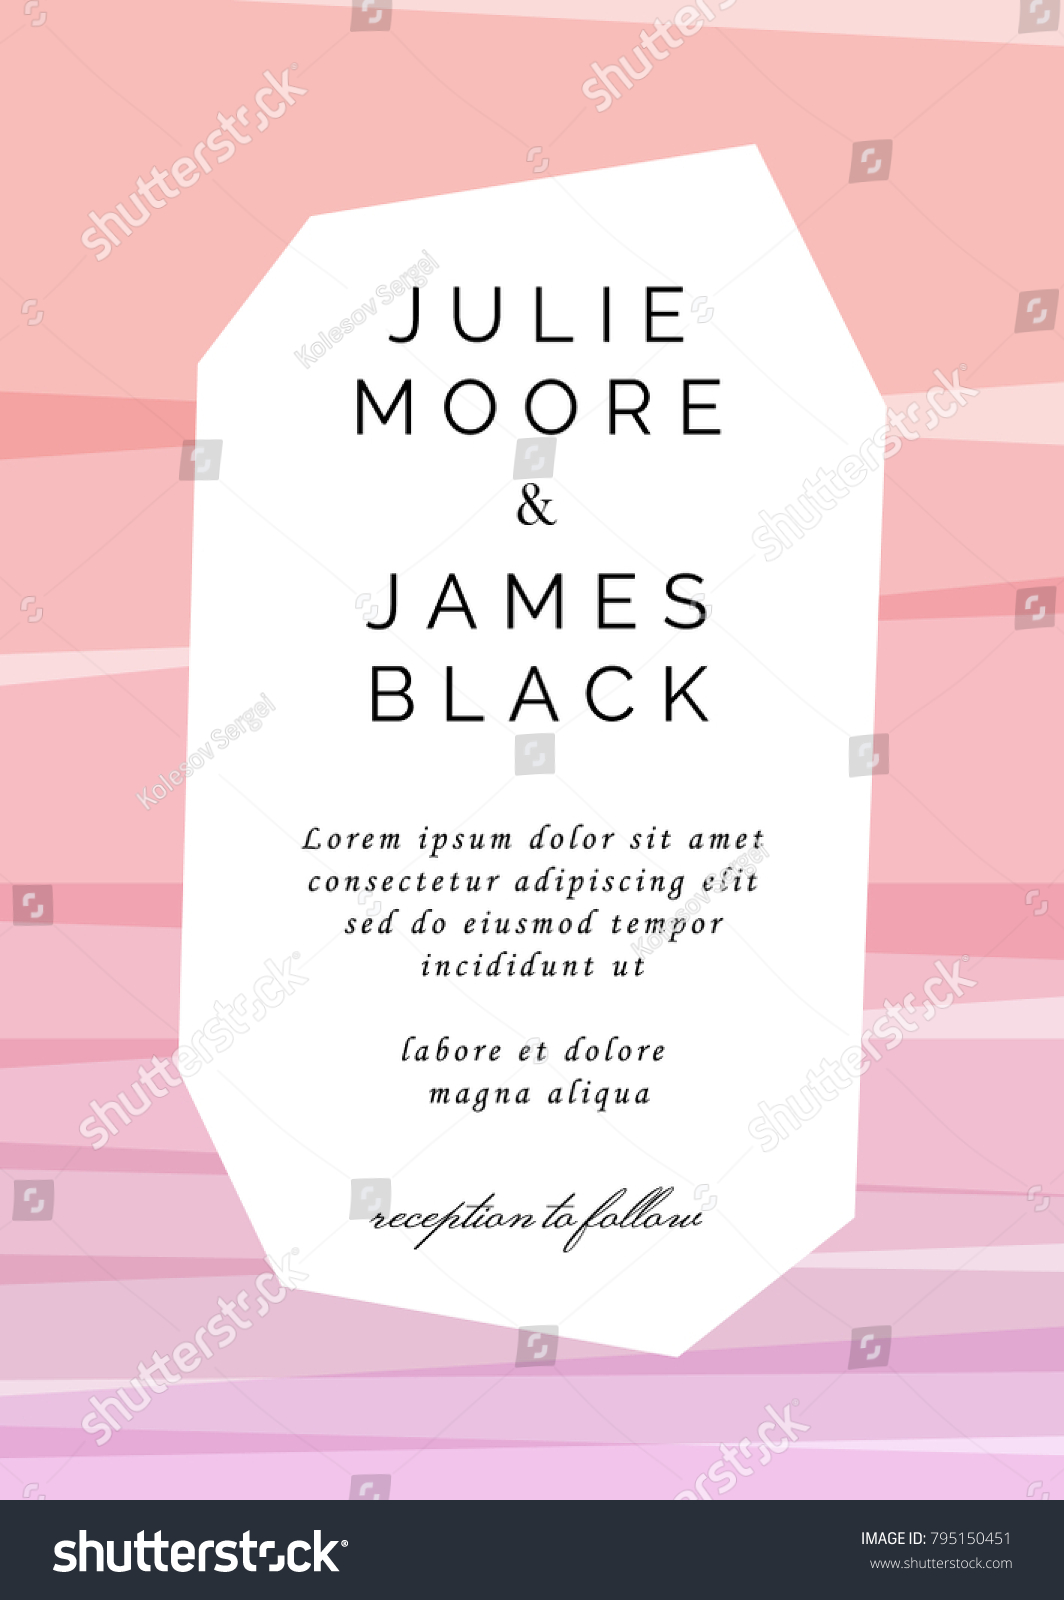 Colorful Wedding Invitation Template Overlay Colors Stock Vector ...